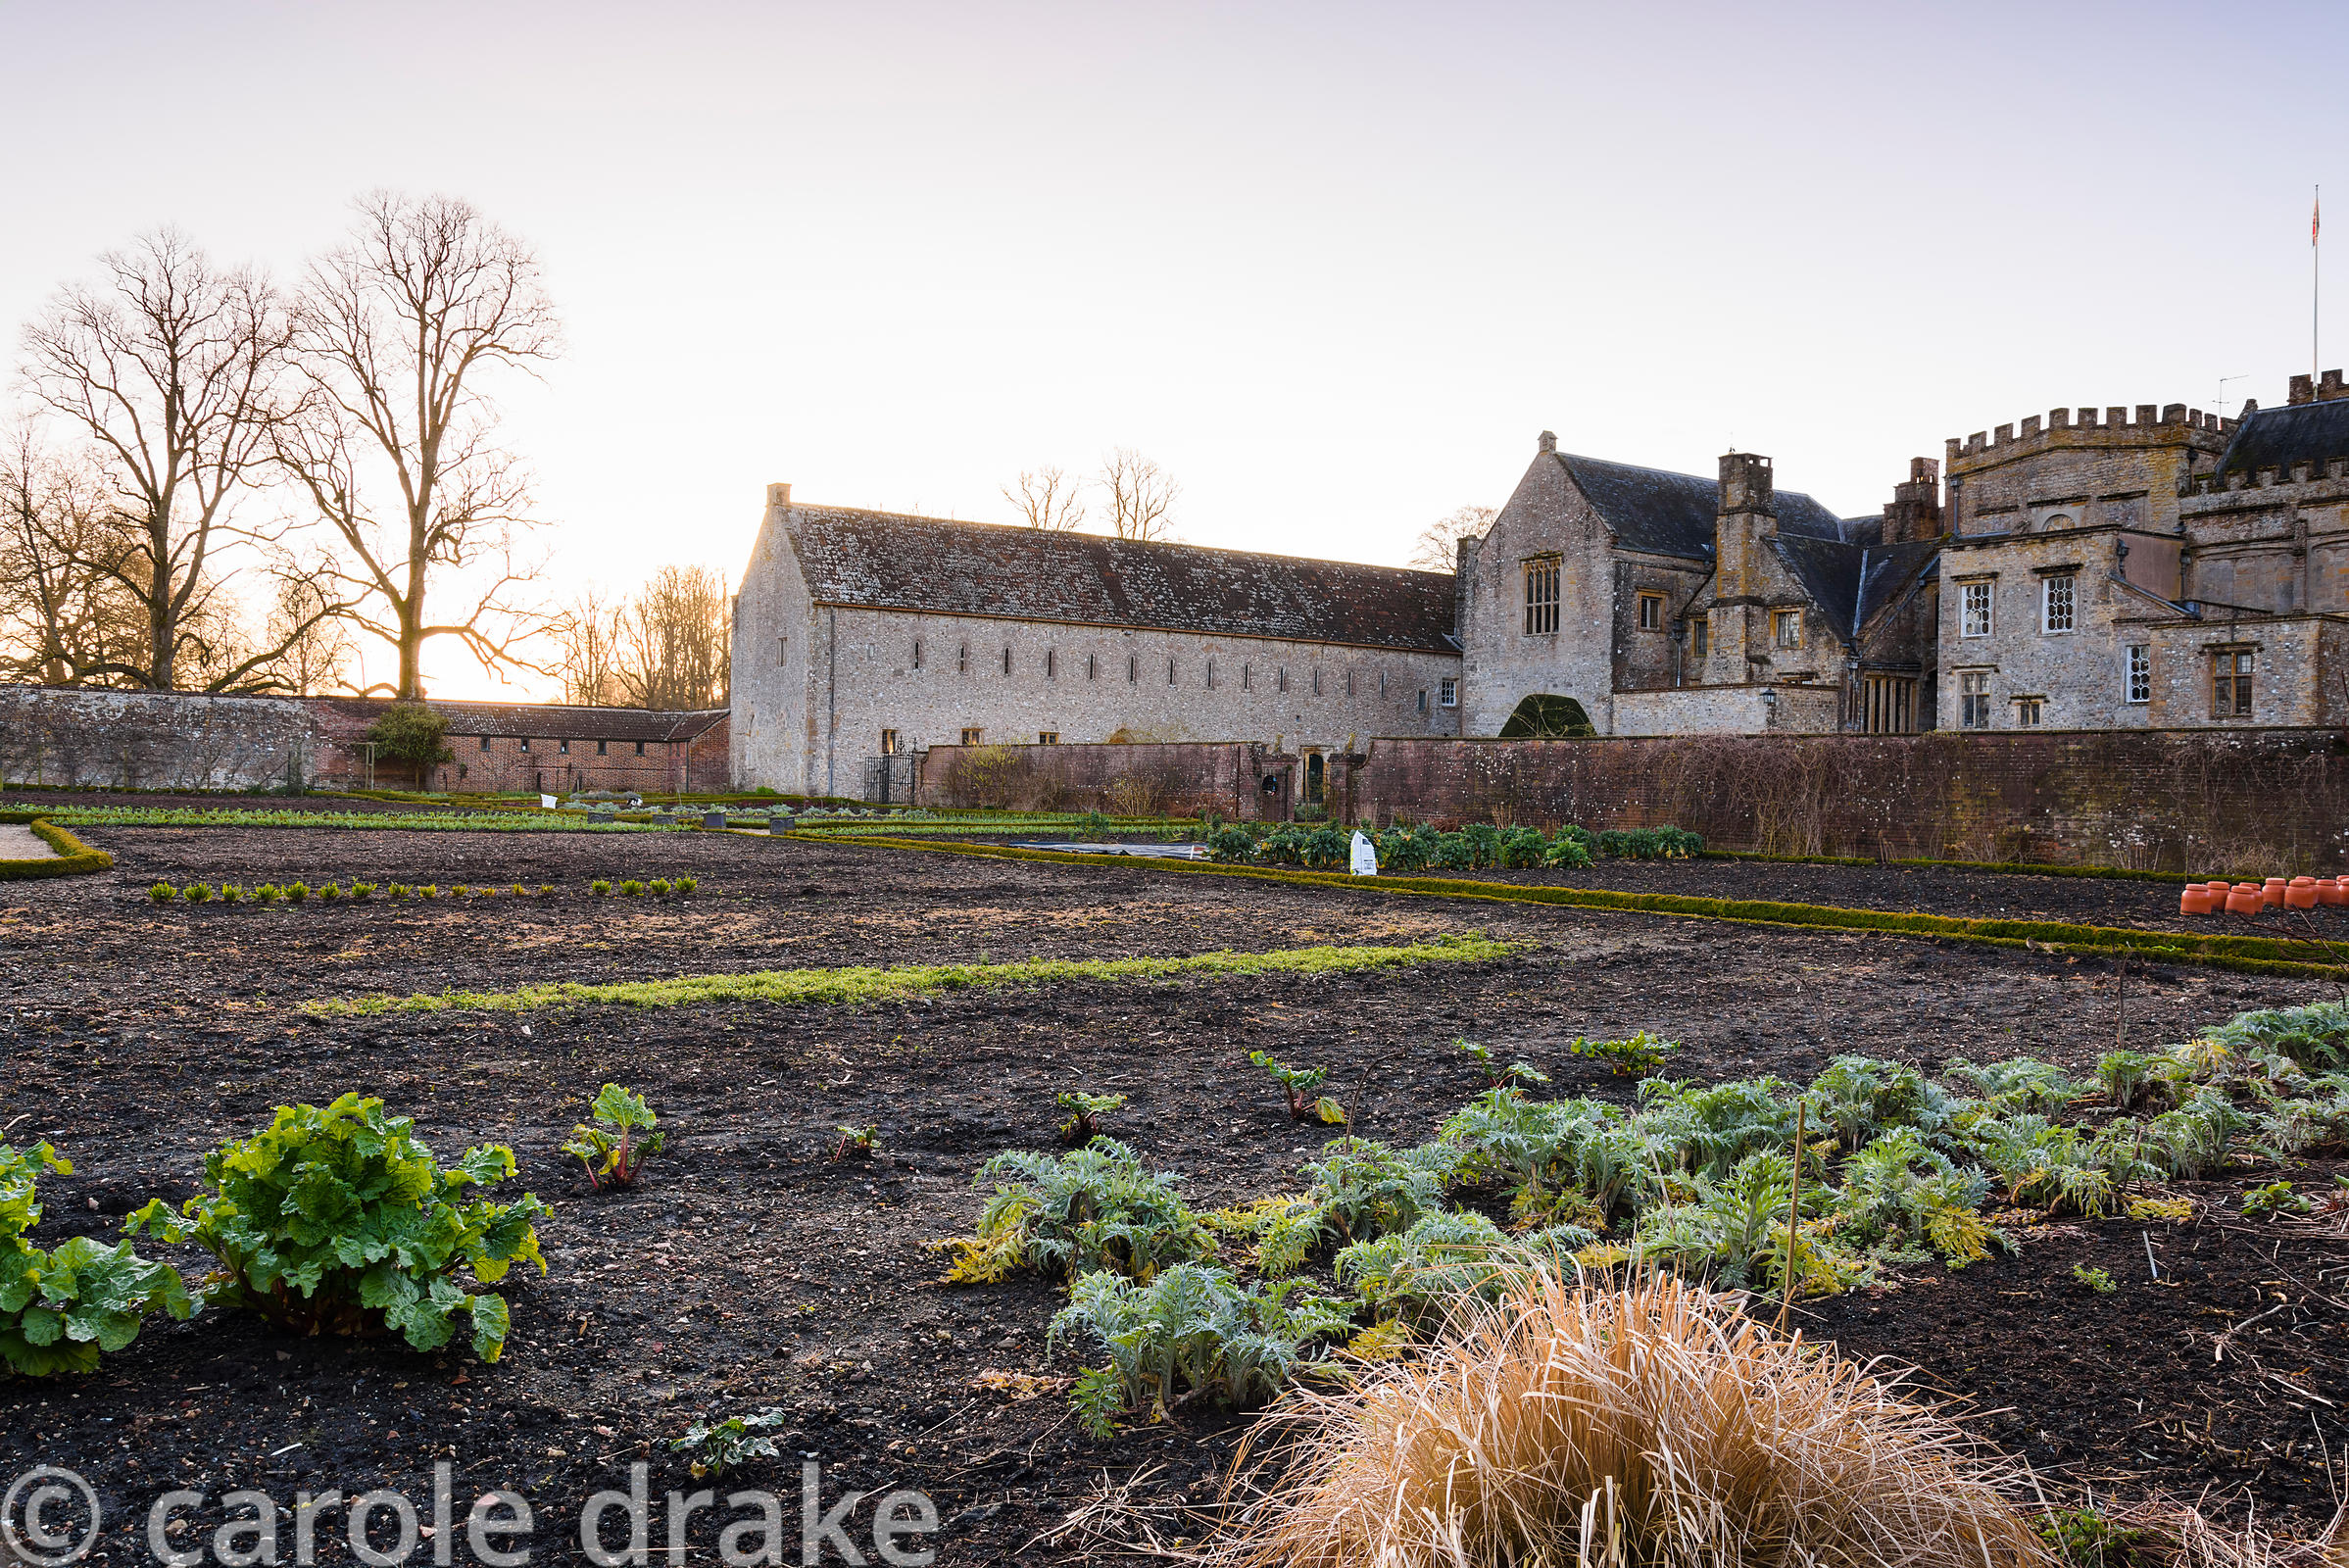 The kitchen garden at Forde Abbey in April with rows of artichokes in the foreground